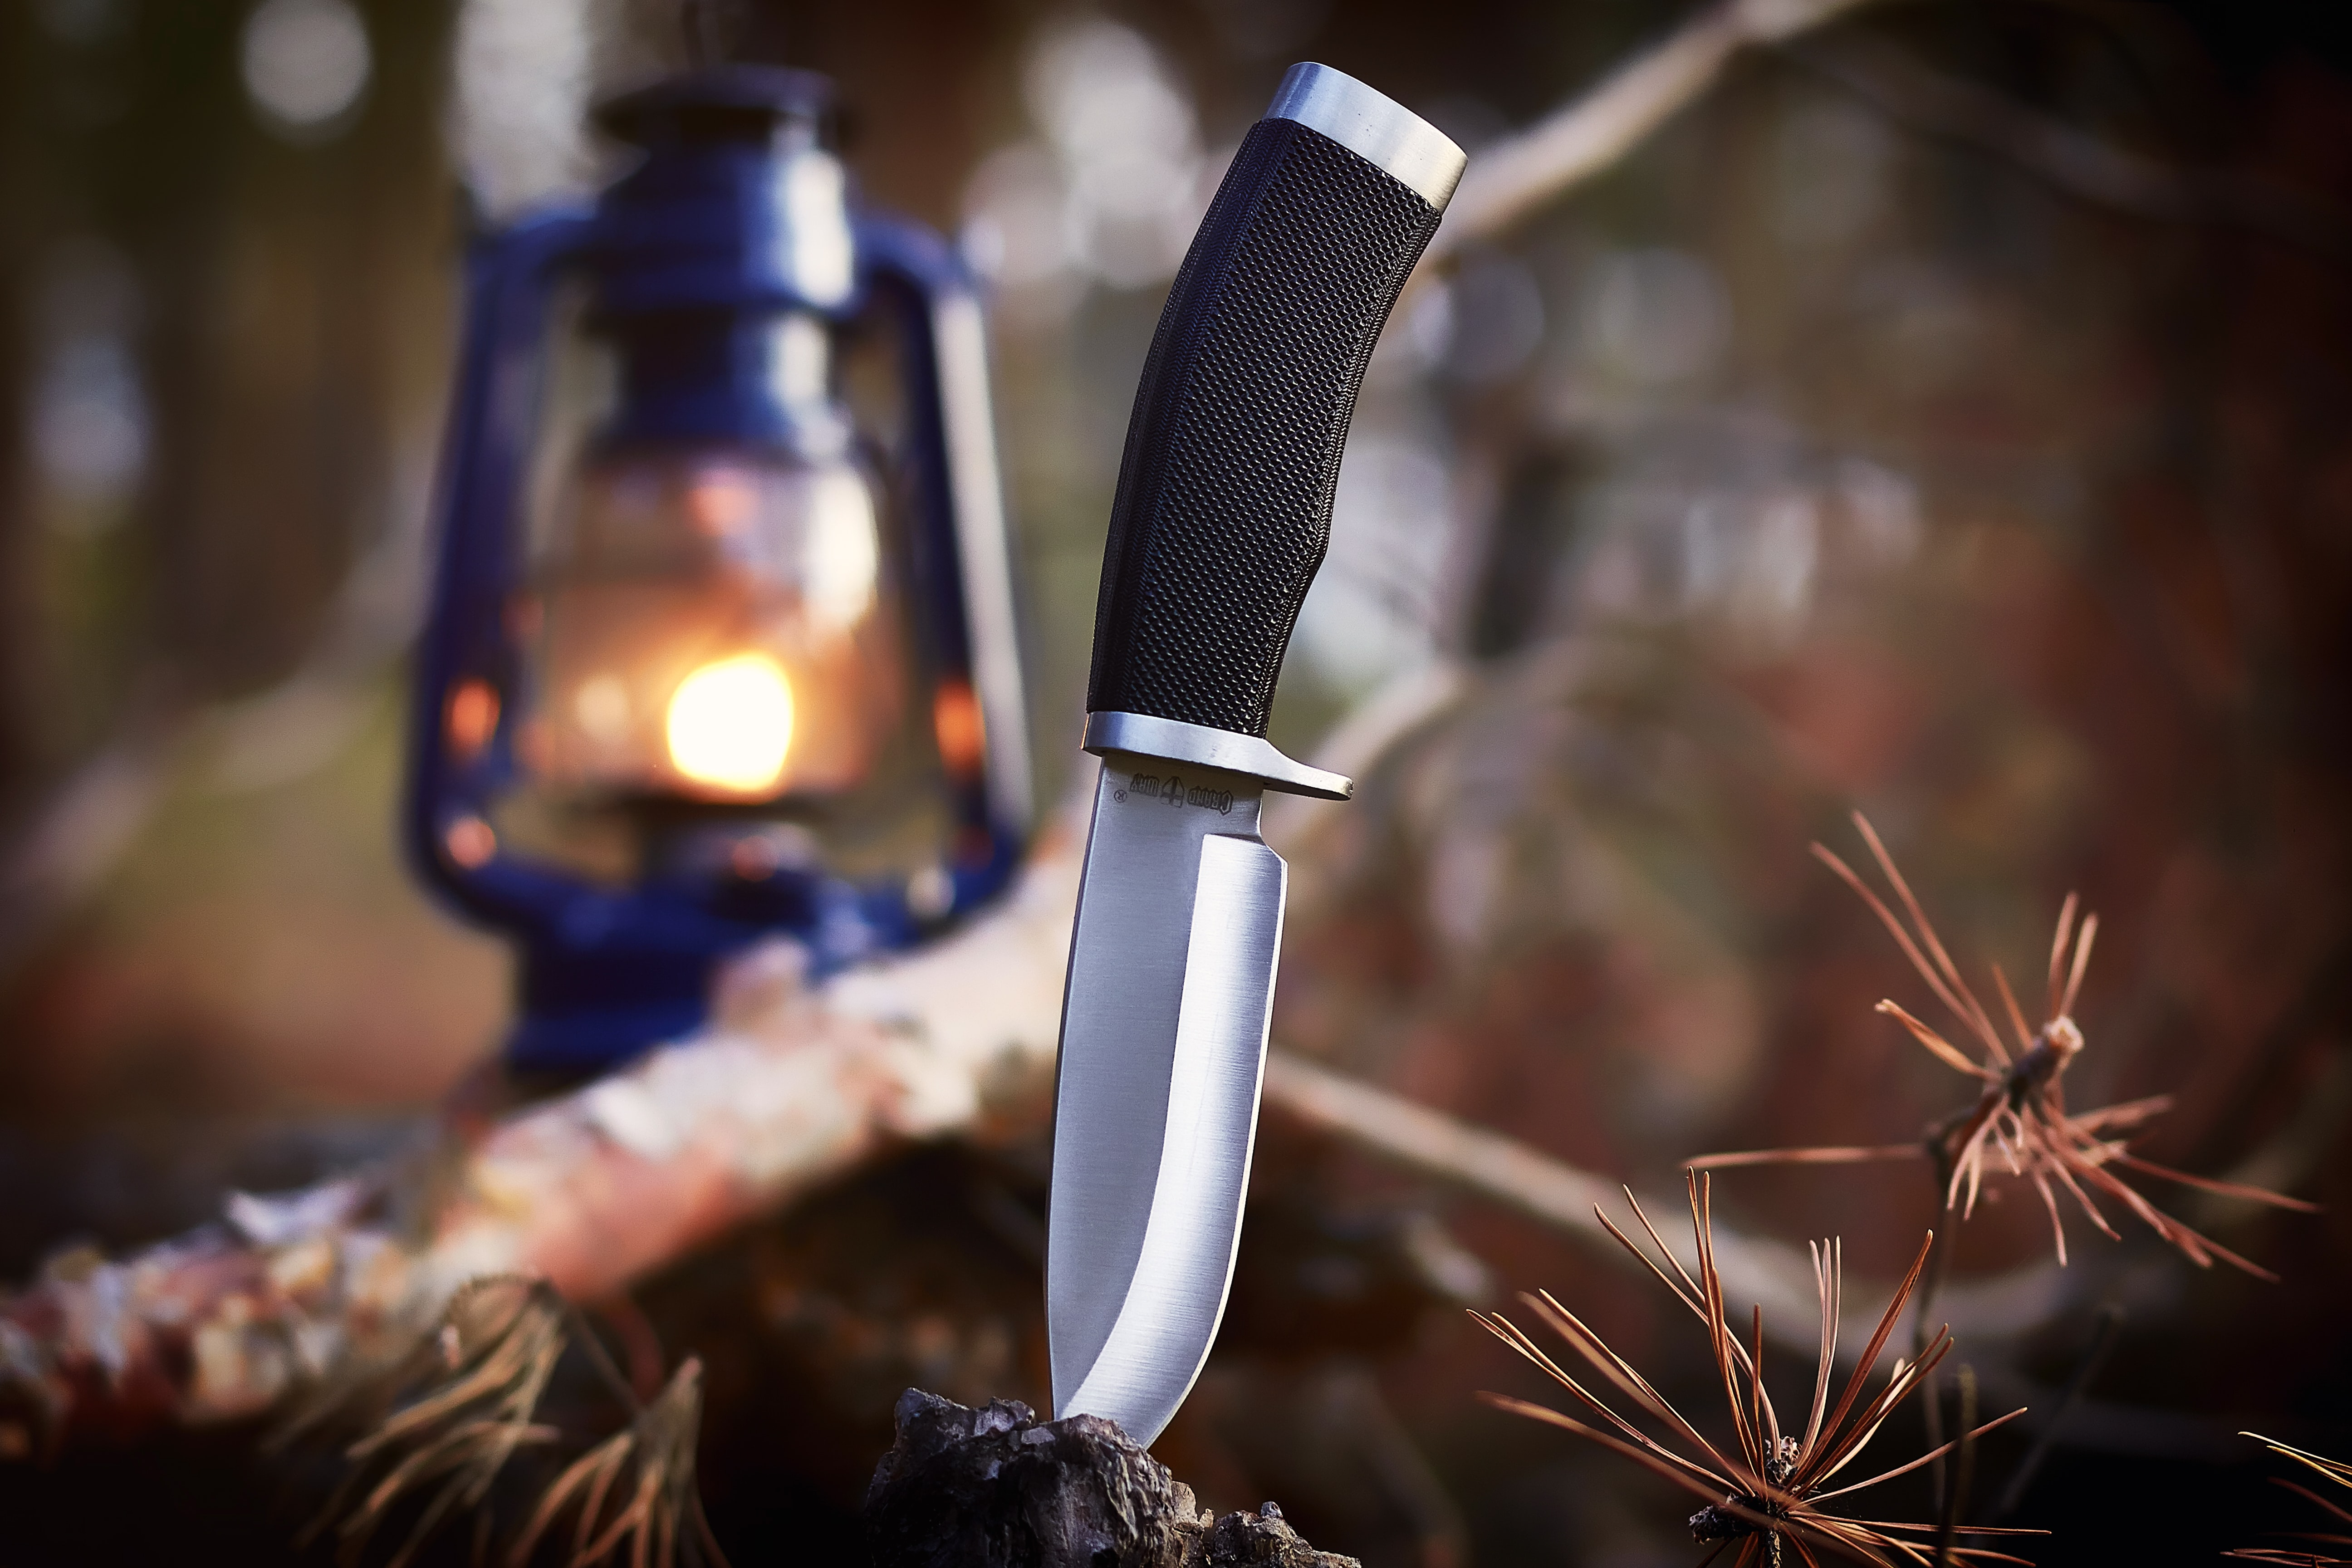 black and gray knife dip-in brown wood near blue lantern